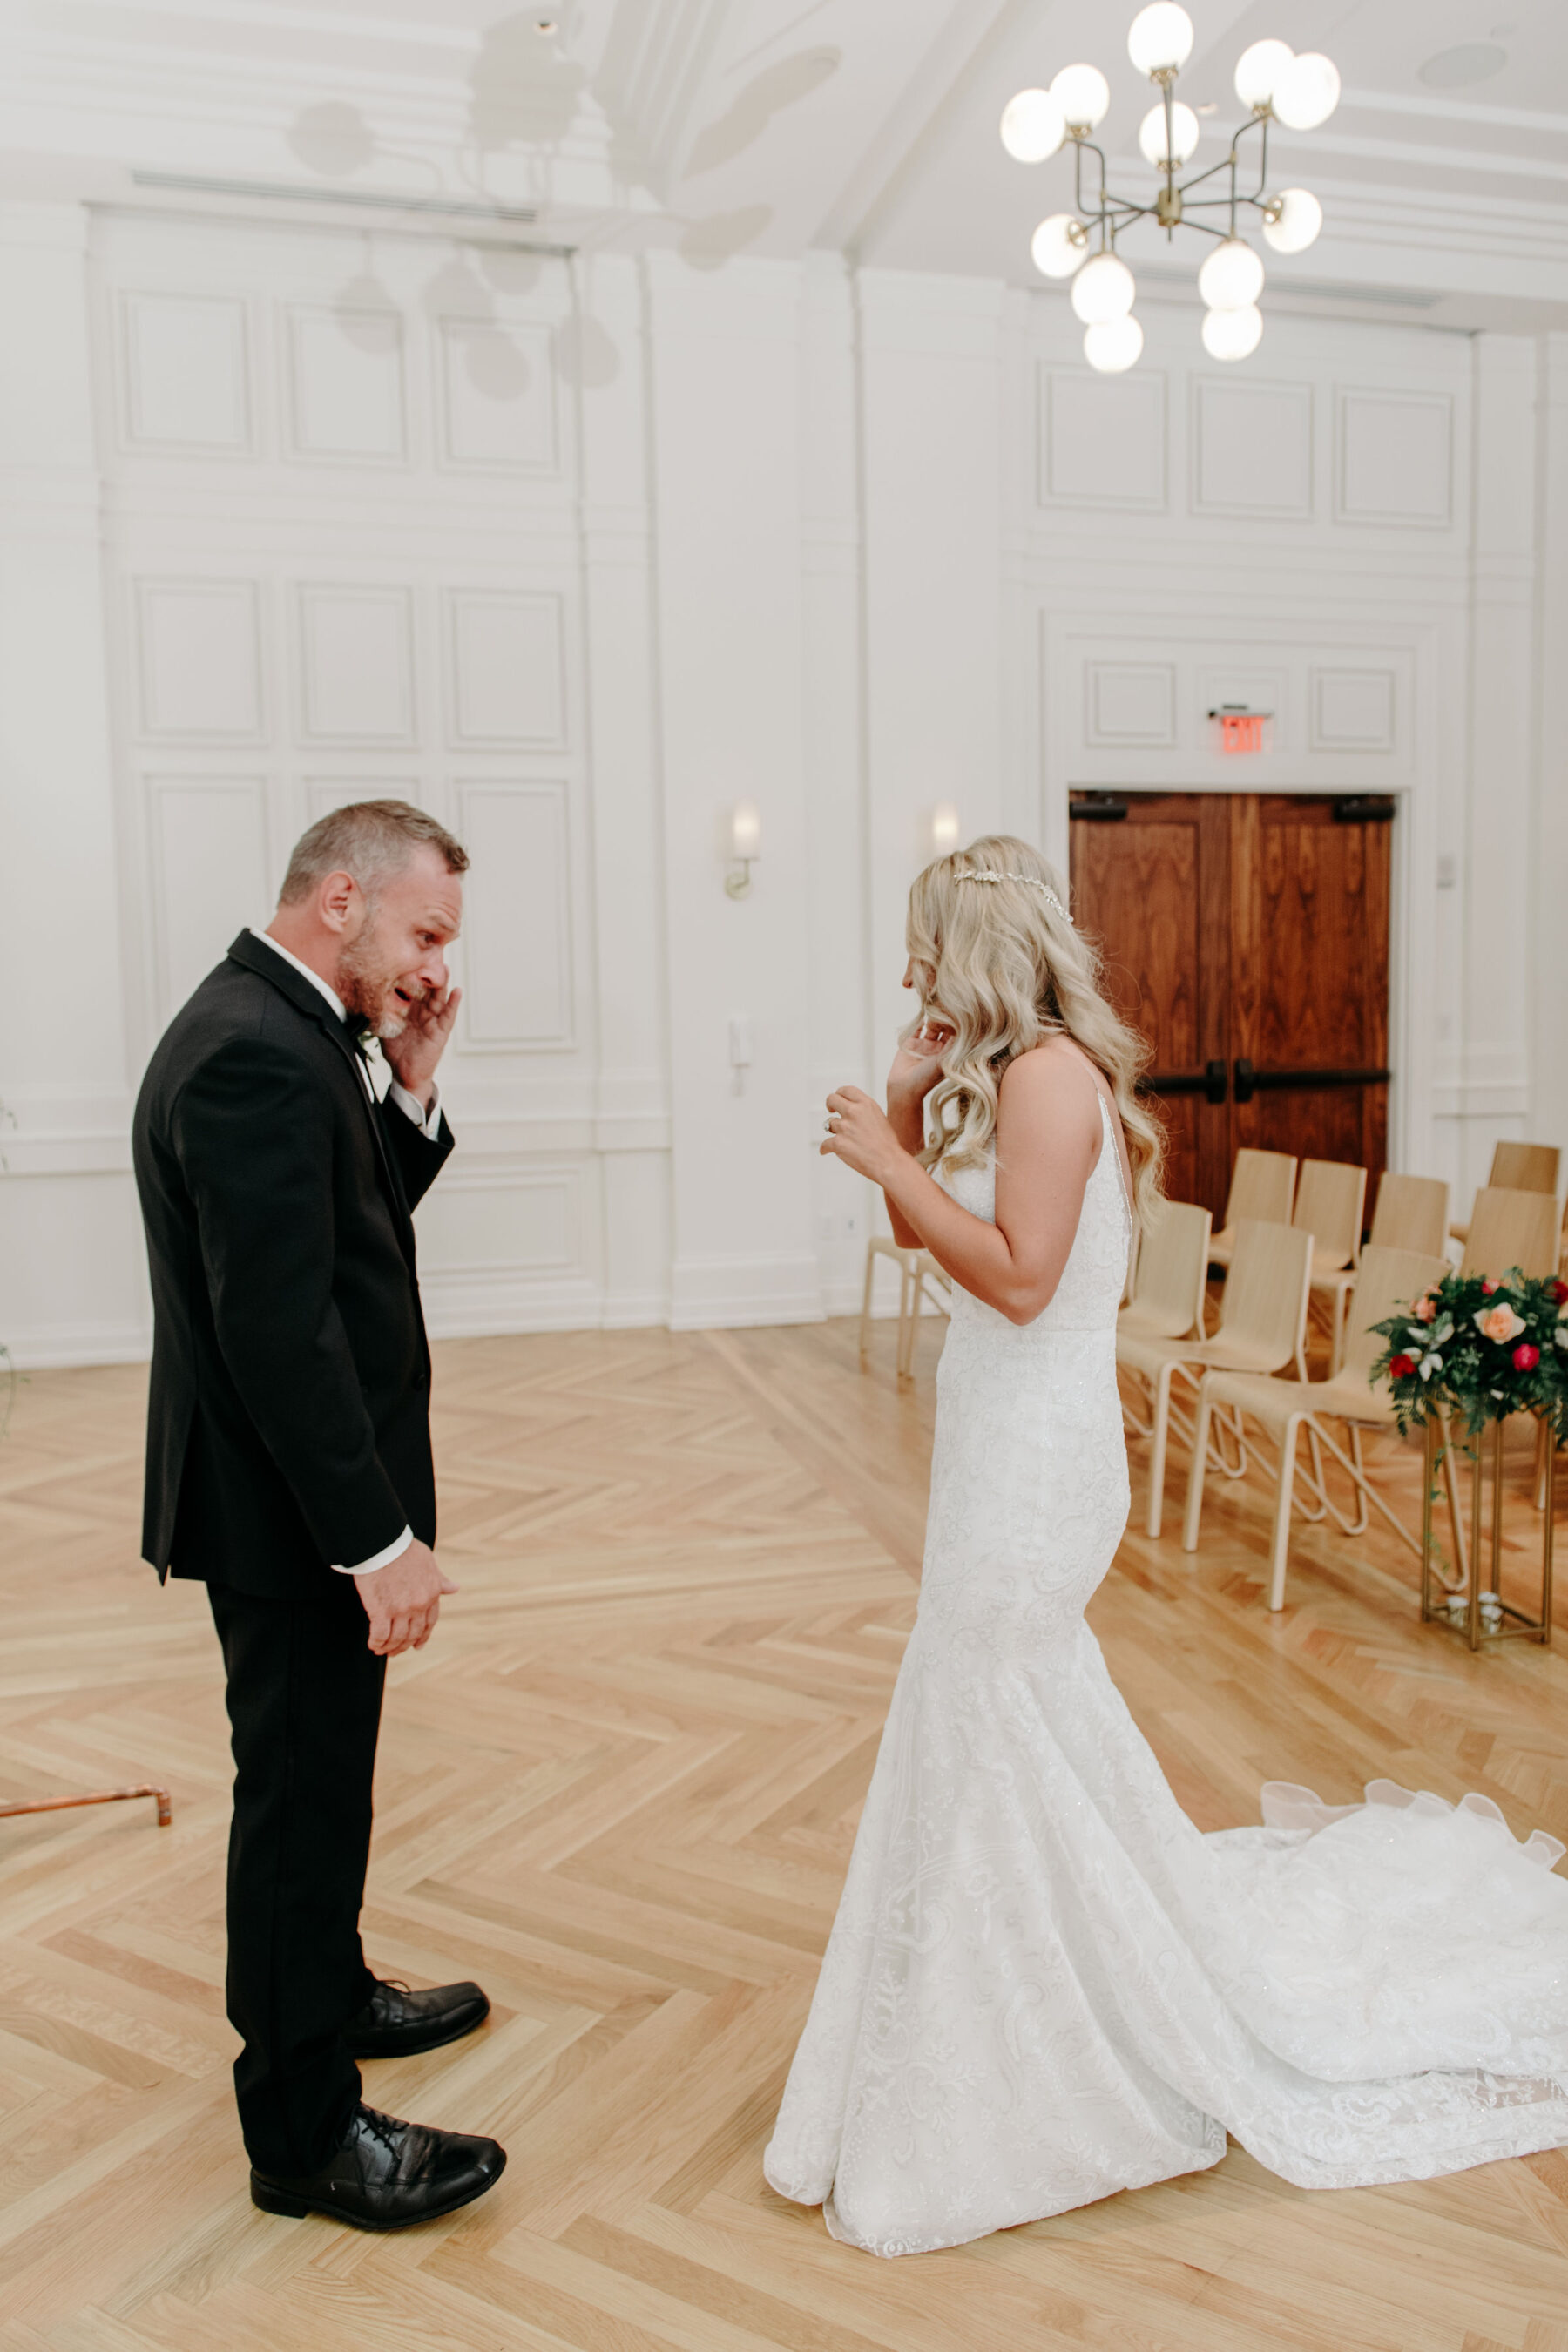 Wedding first look: Summer Tennessee Wedding at Noelle from Jayde J. Smith Events featured on Nashville Bride Guide